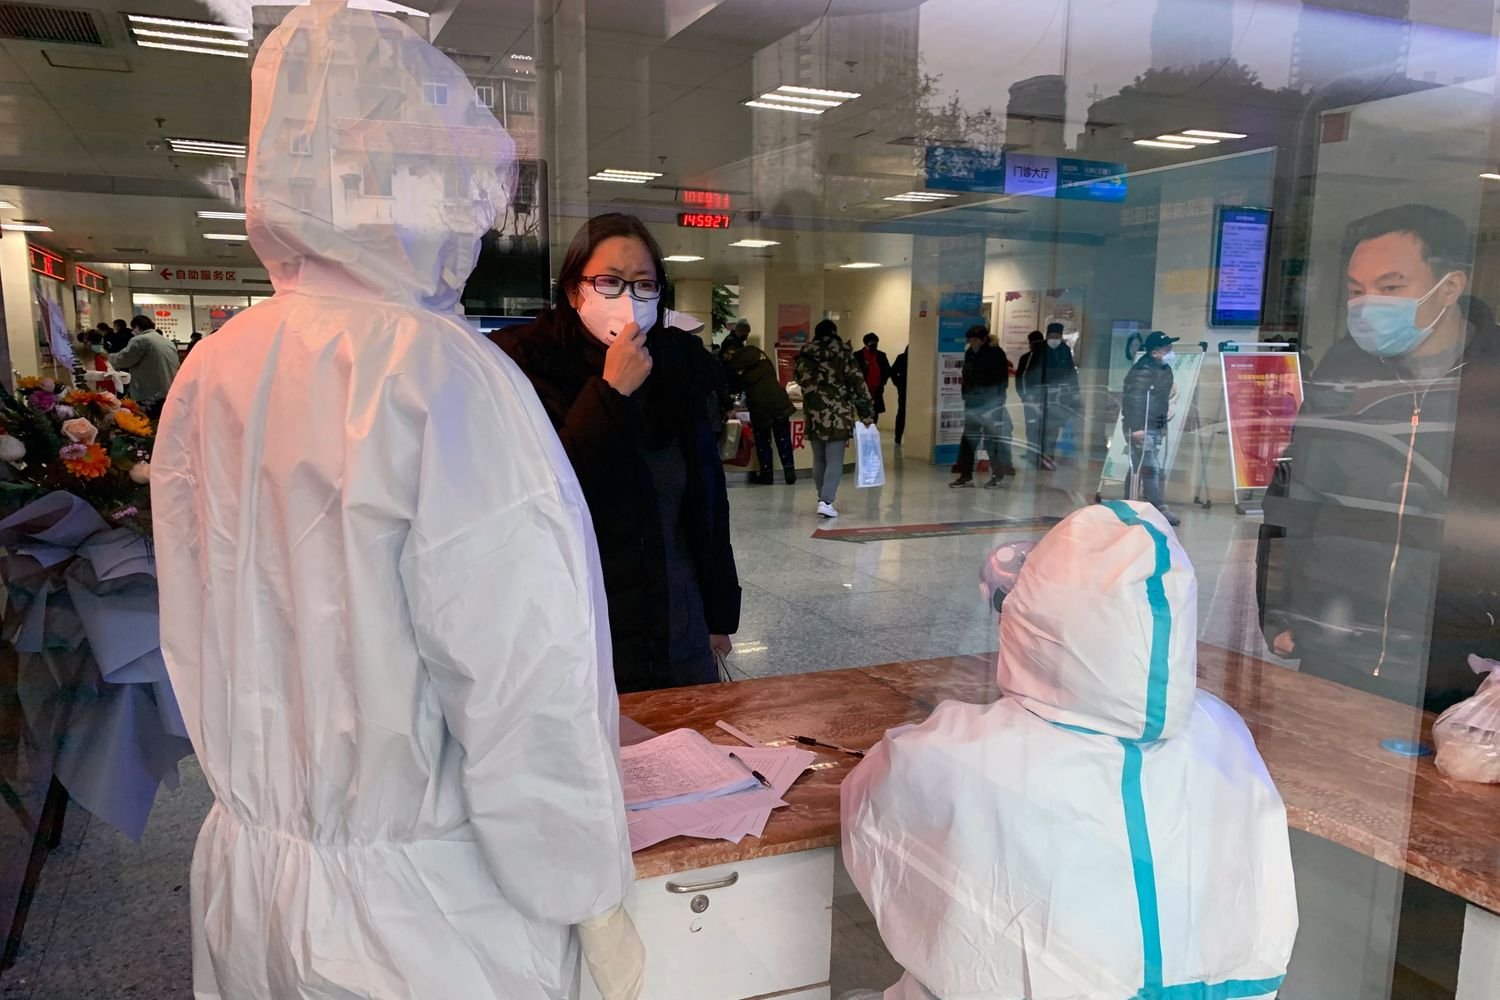 A woman wearing a face mask speaks to hospital personnel wearing protective medical gowns at No.5 Hospital in Wuhan, China, on Friday. (Chris Buckley/The New York Times)